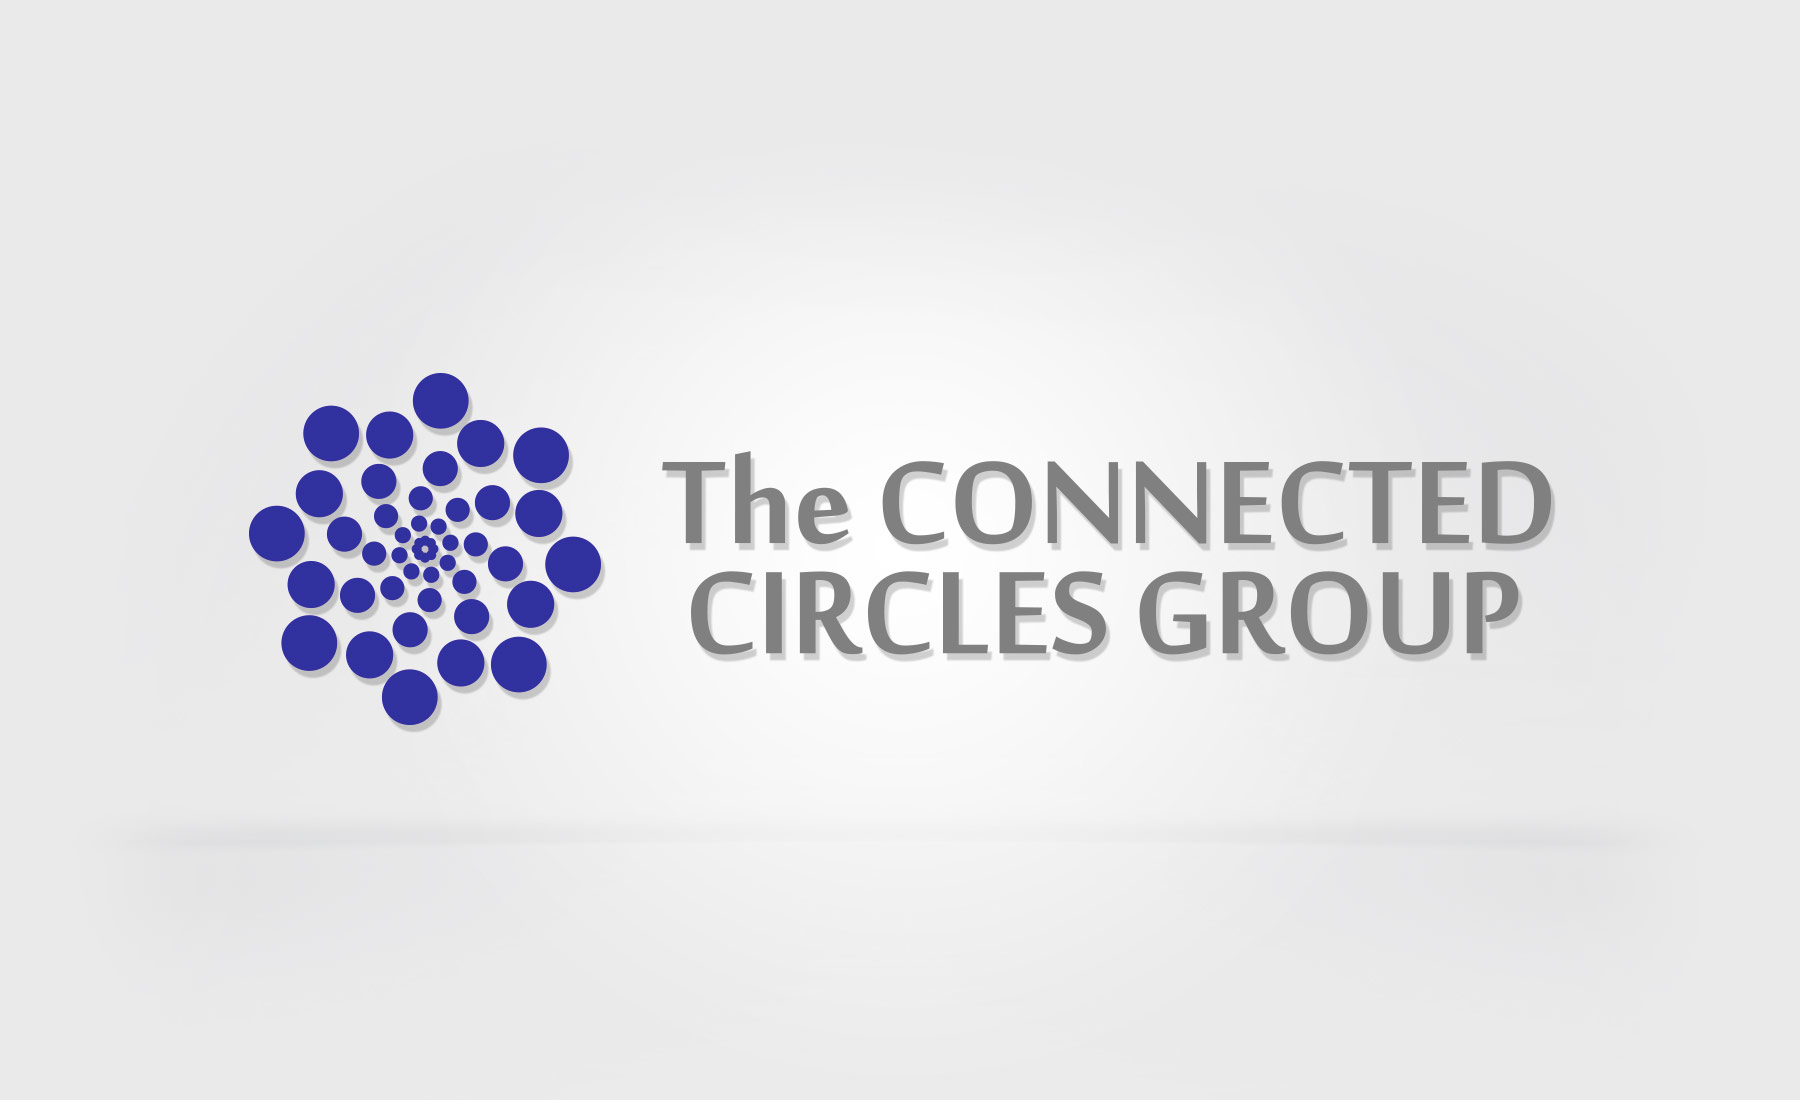 Theconnected-Circles-Group